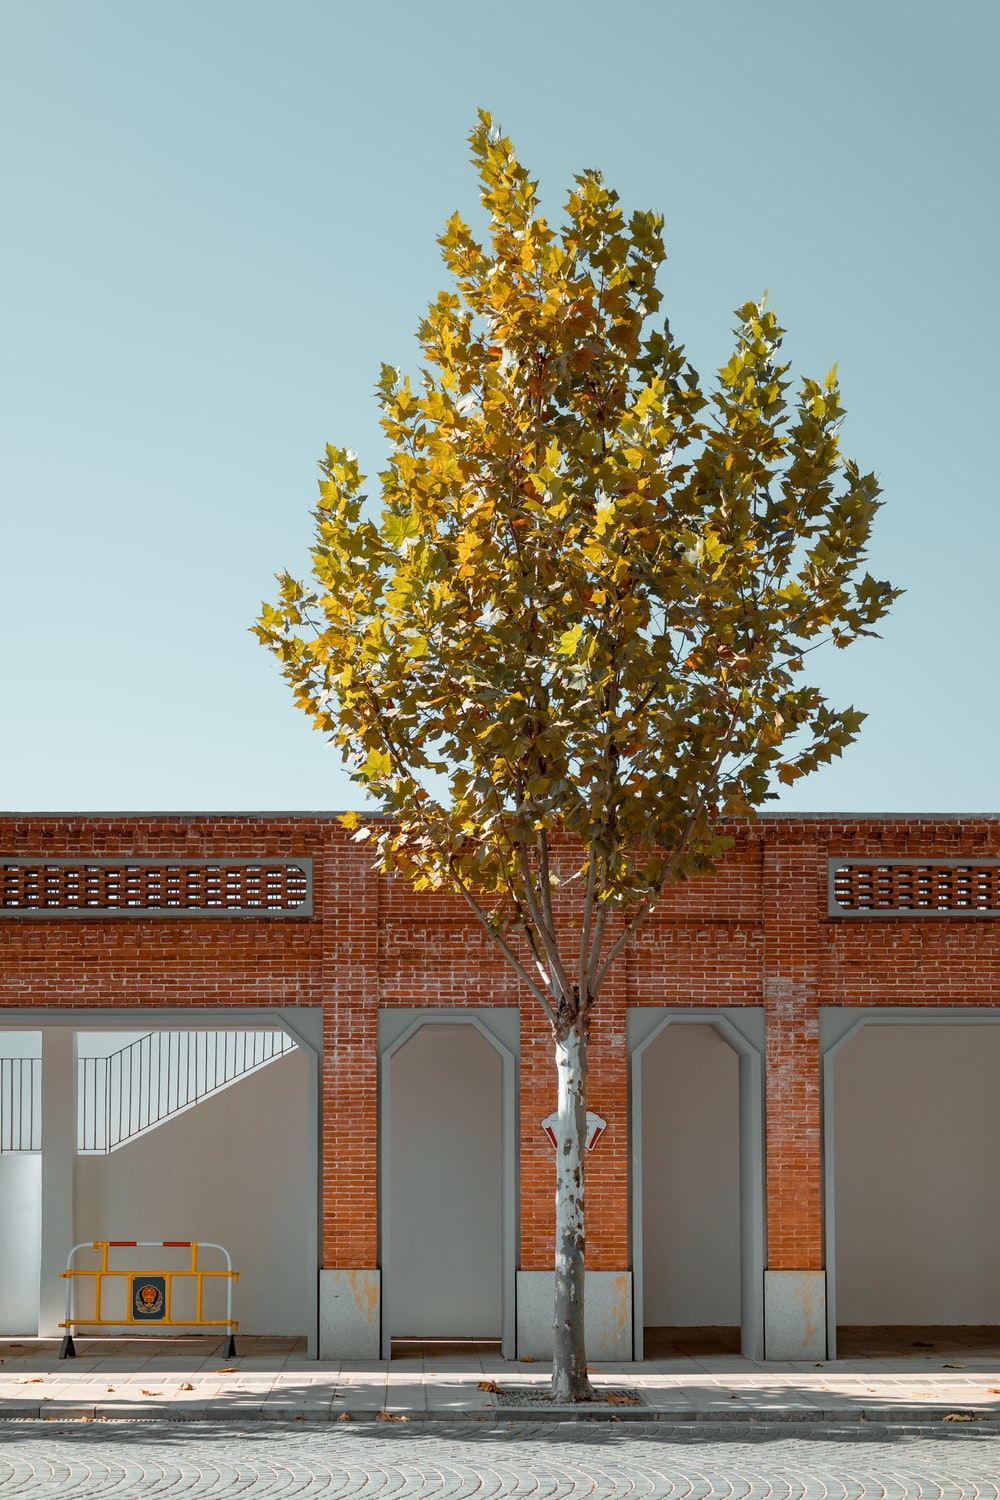 green tree in front of brown concrete building